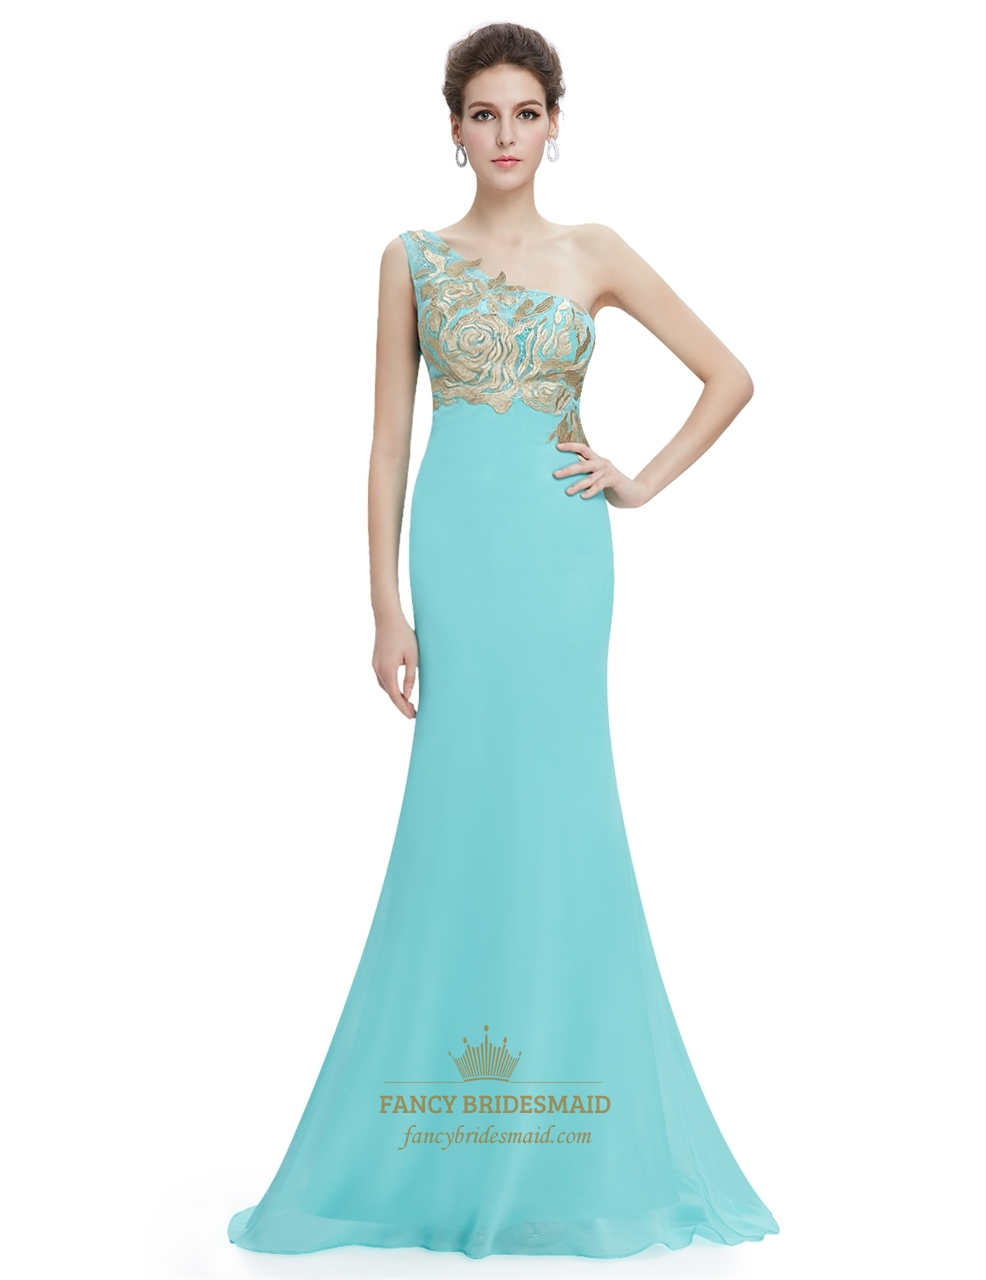 Prom Dresses With Gold Accents | Fancy Bridesmaid Dresses